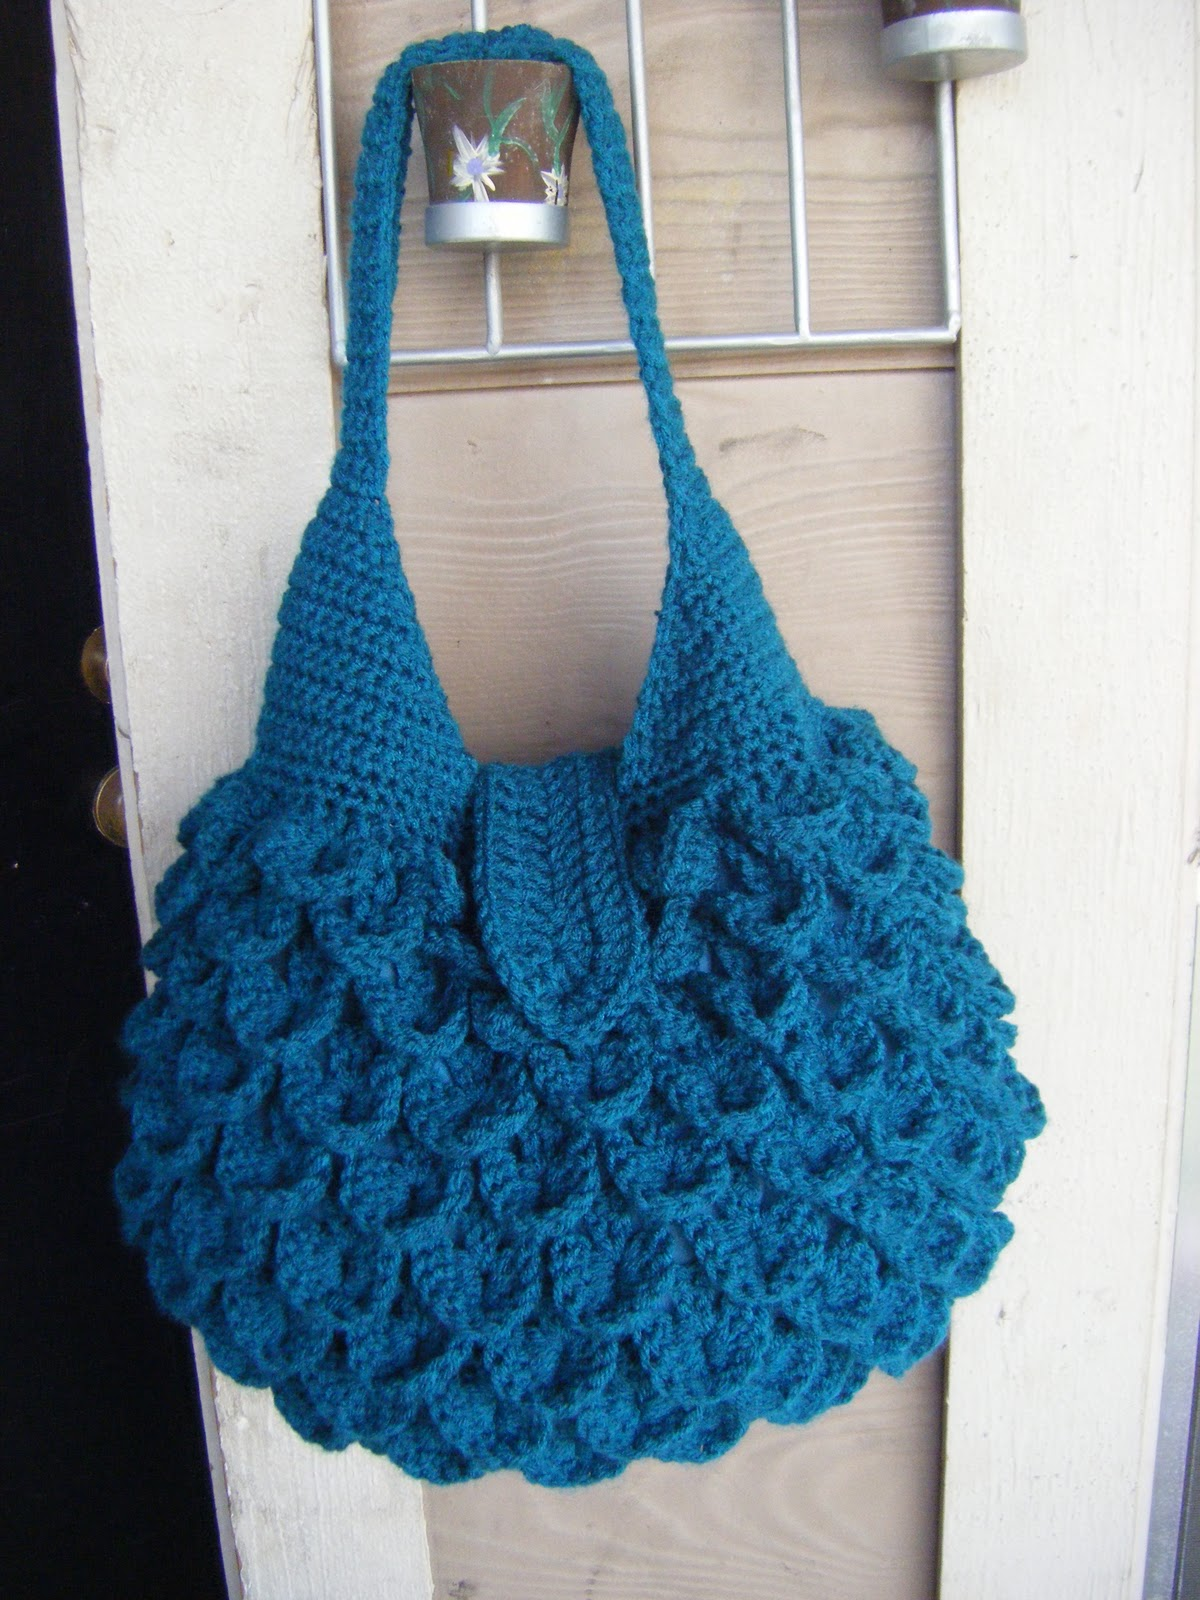 Crochet Shoulder Bag Pattern Free : Free cat schoolbag crochet pattern ~ Amigurumi crochet patterns